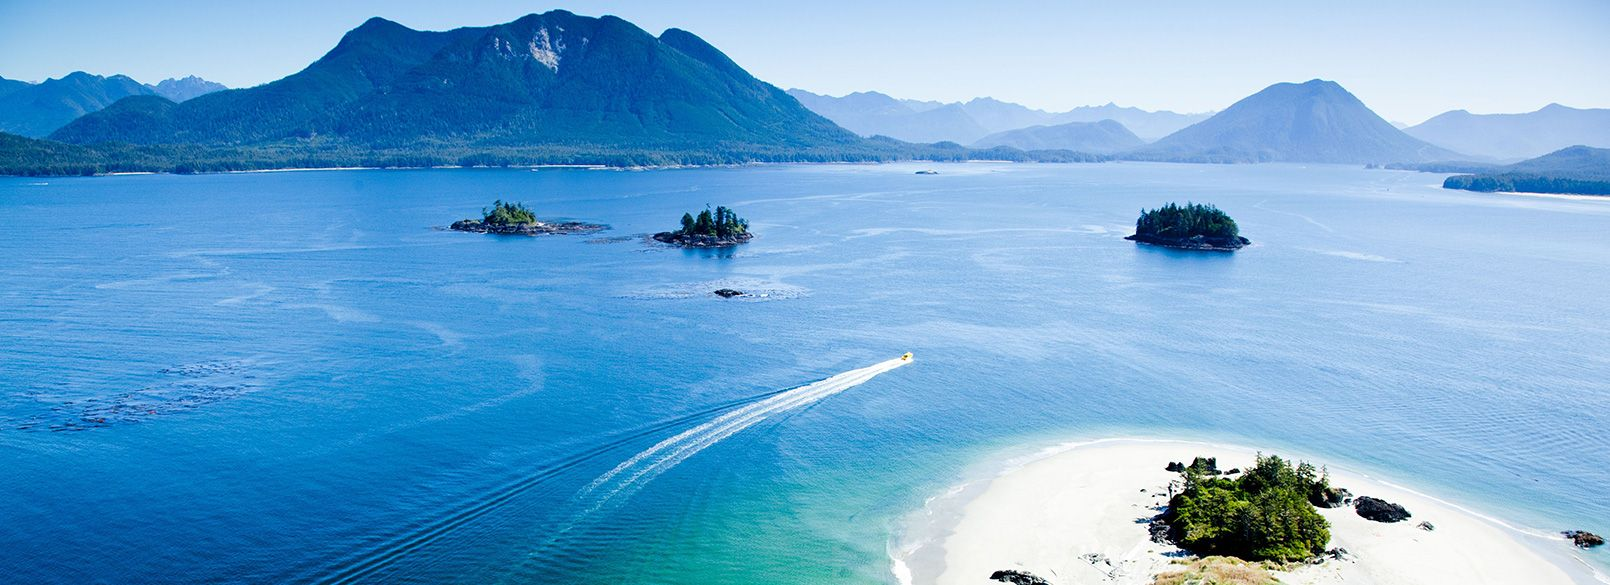 Simply get yourself to Vancouver, BC or Tofino, BC on ...